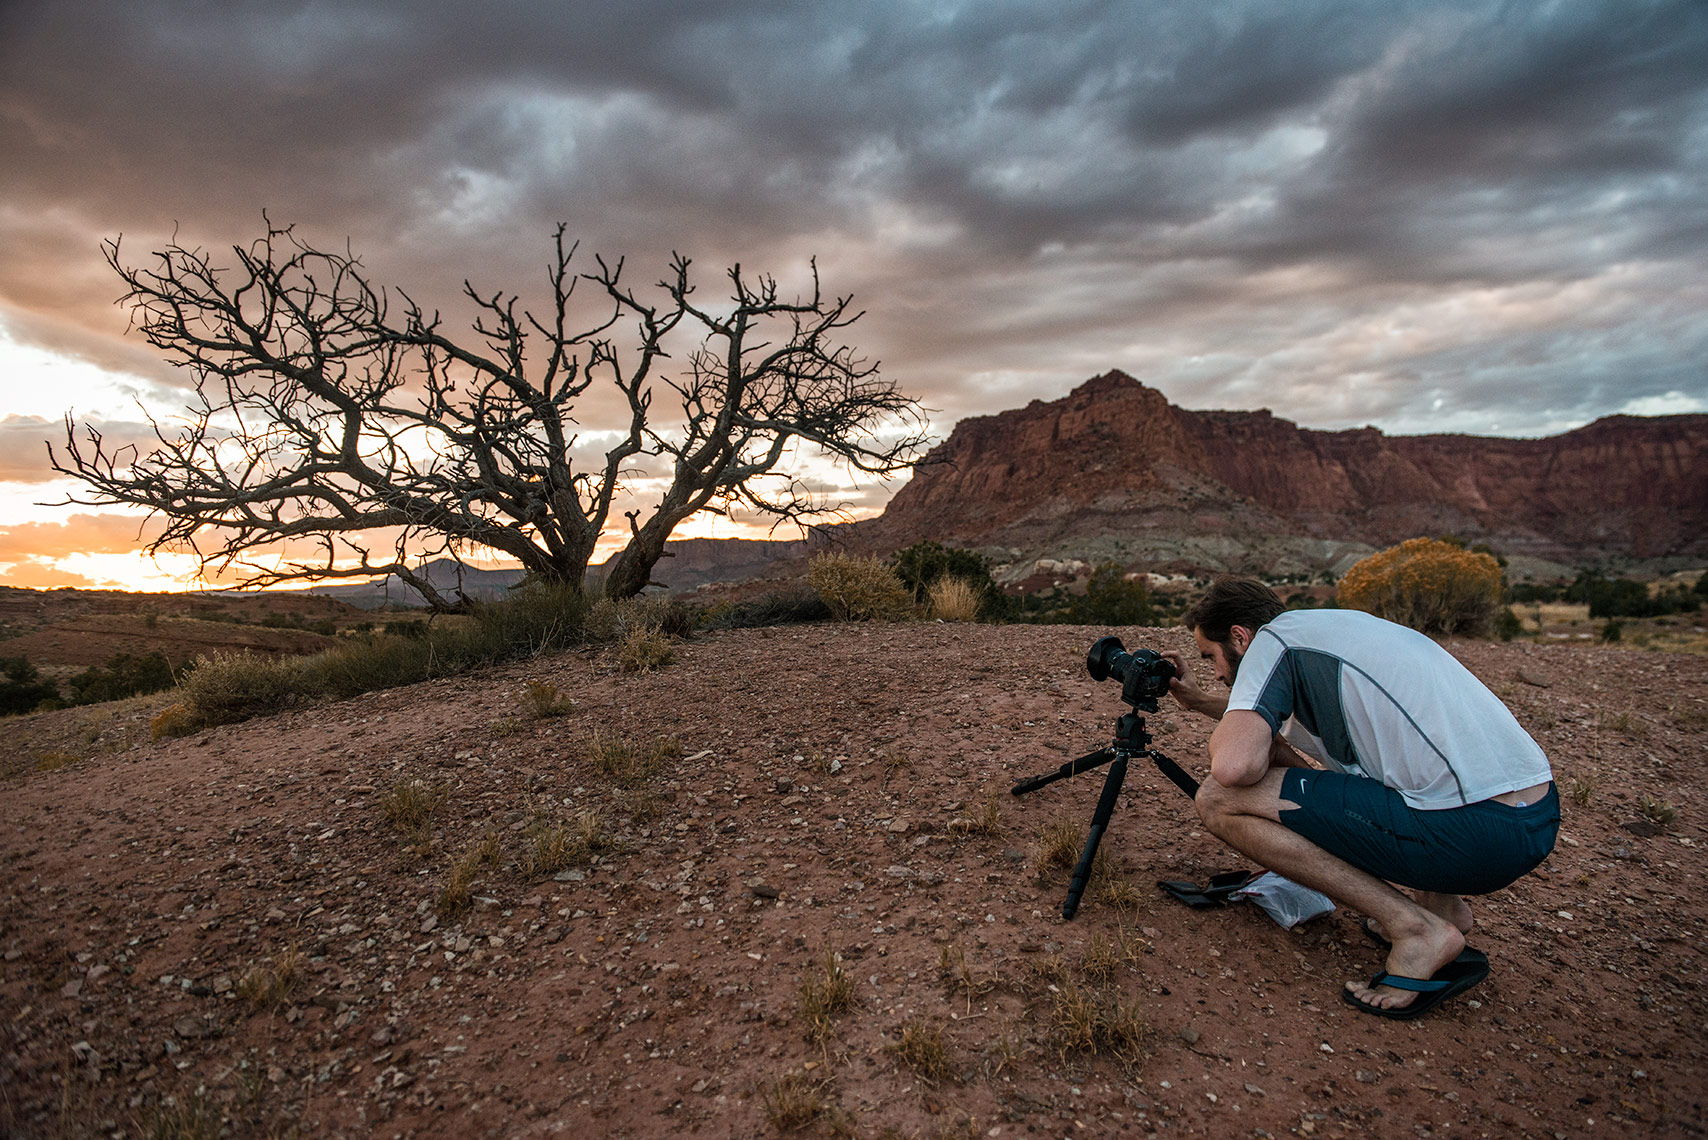 Lane_Peters_Multimedia_Capitol-Reef_1.jpg